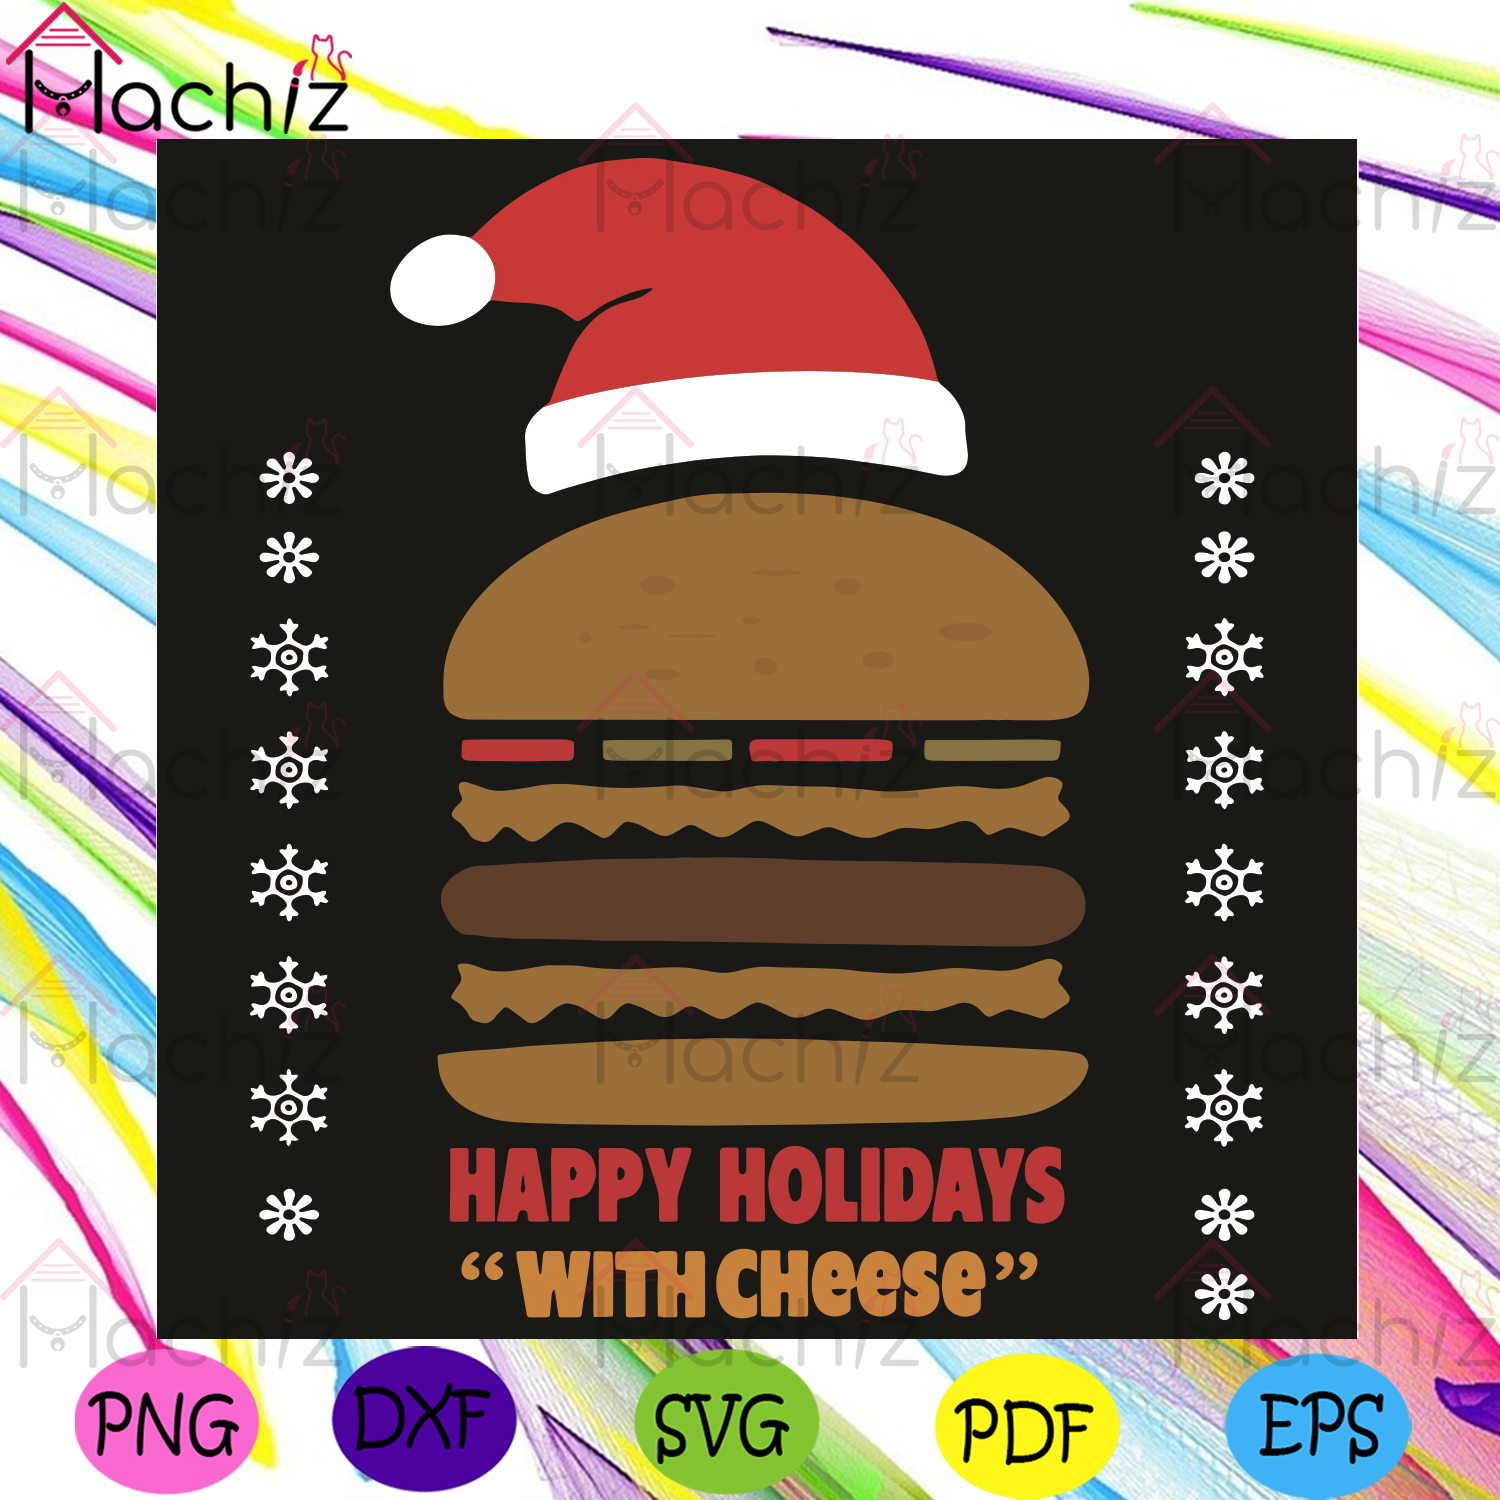 Happy Holidays With Cheese Svg, Christmas Svg, Hamburger Svg, Hamburger Christmas Svg, Cheese Svg, Merry Christmas Svg, Christmas Day Svg, Christmas Gifts Svg, Christmas Celebration Svg, Happy Holiday Svg, Jolly Svg